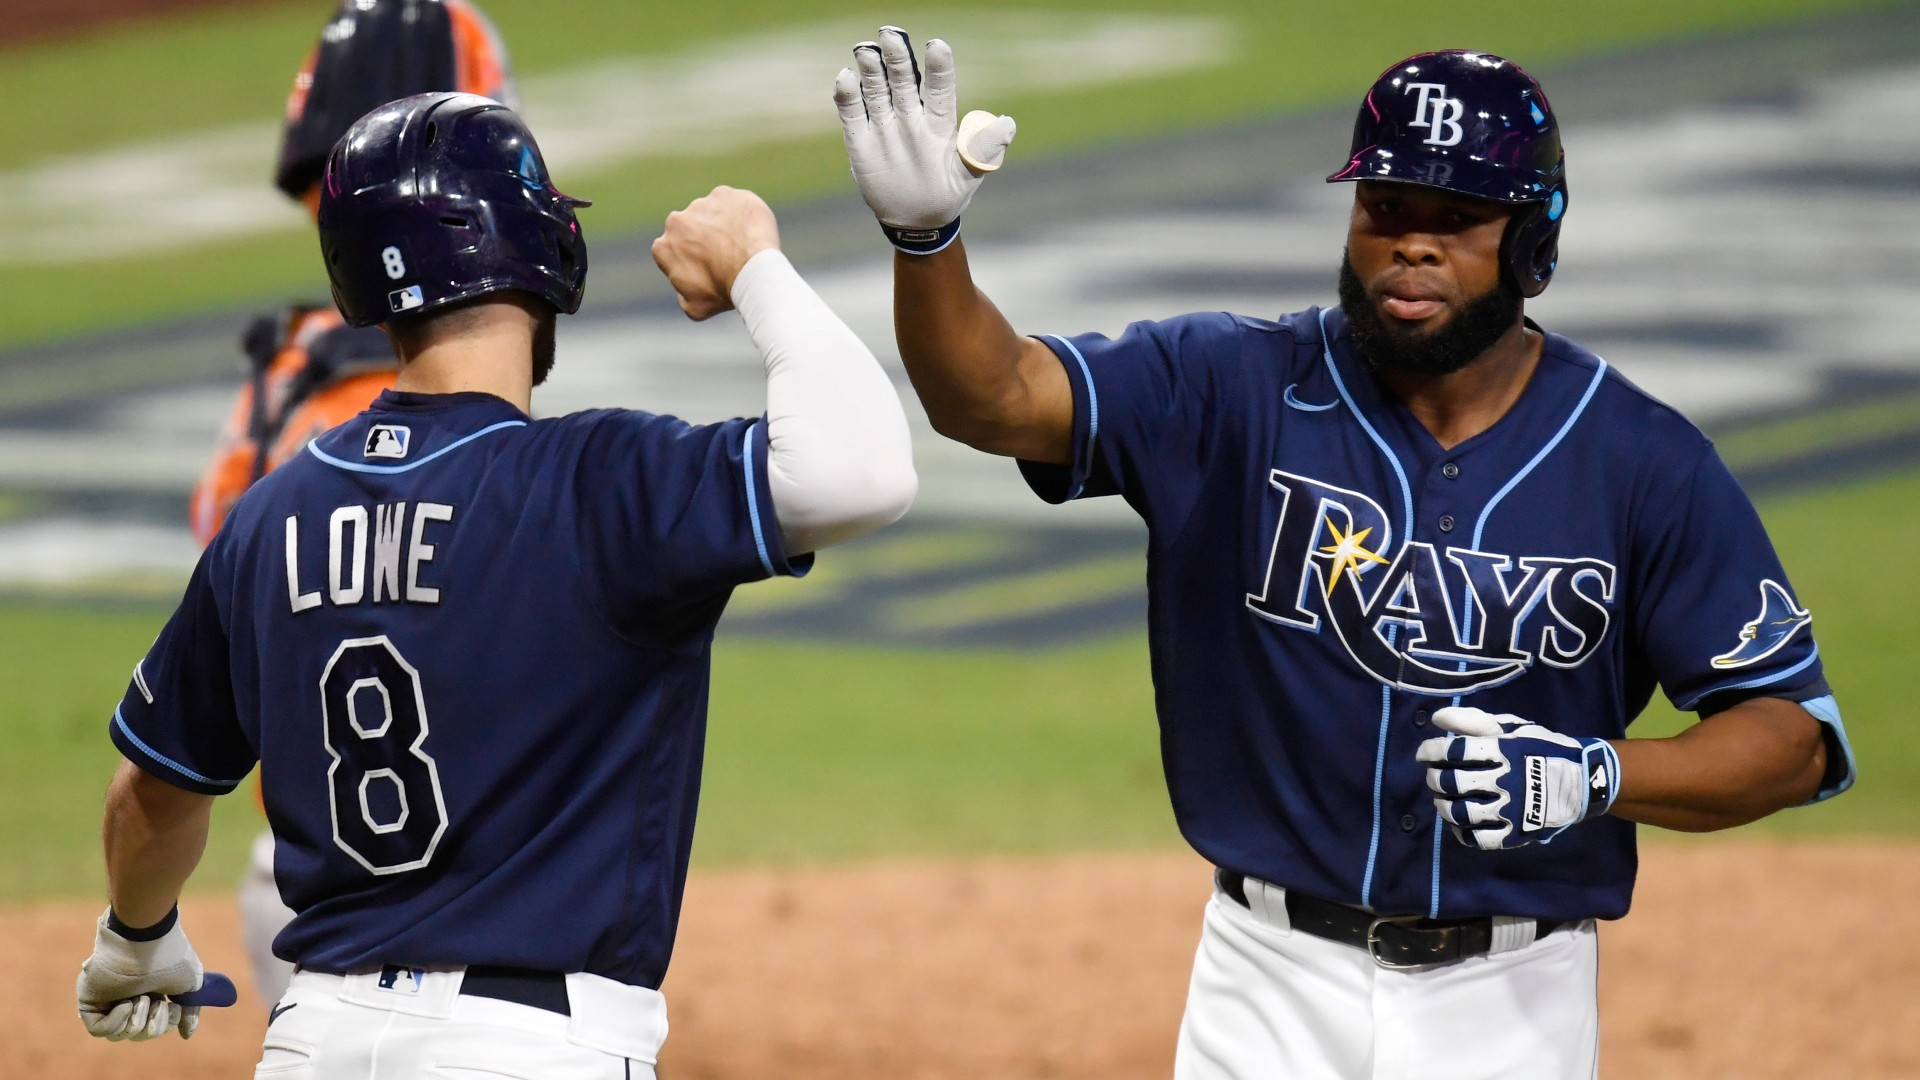 MLB Playoff Odds, Picks & Predictions: Rays vs. Astros Game 7 (Saturday, October 17) article feature image